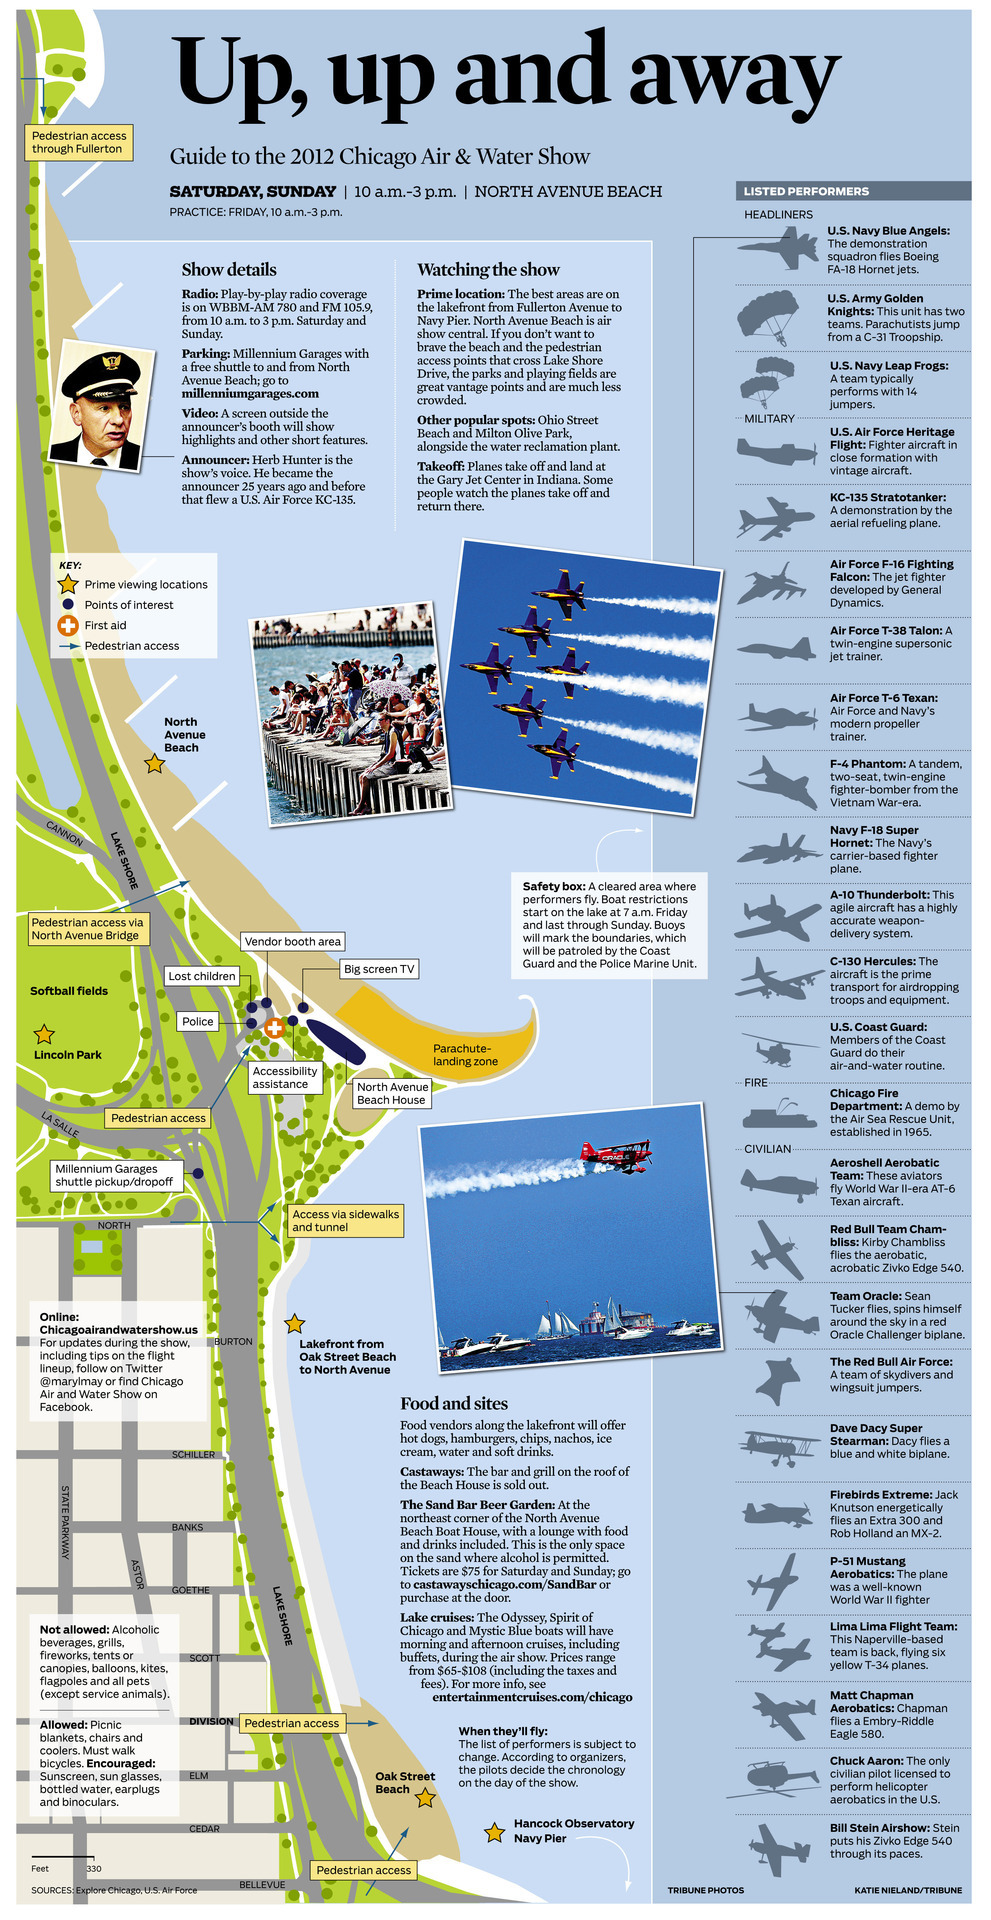 Chicago air and water show map: It'll be a bit noisy on the lake shore this weekend